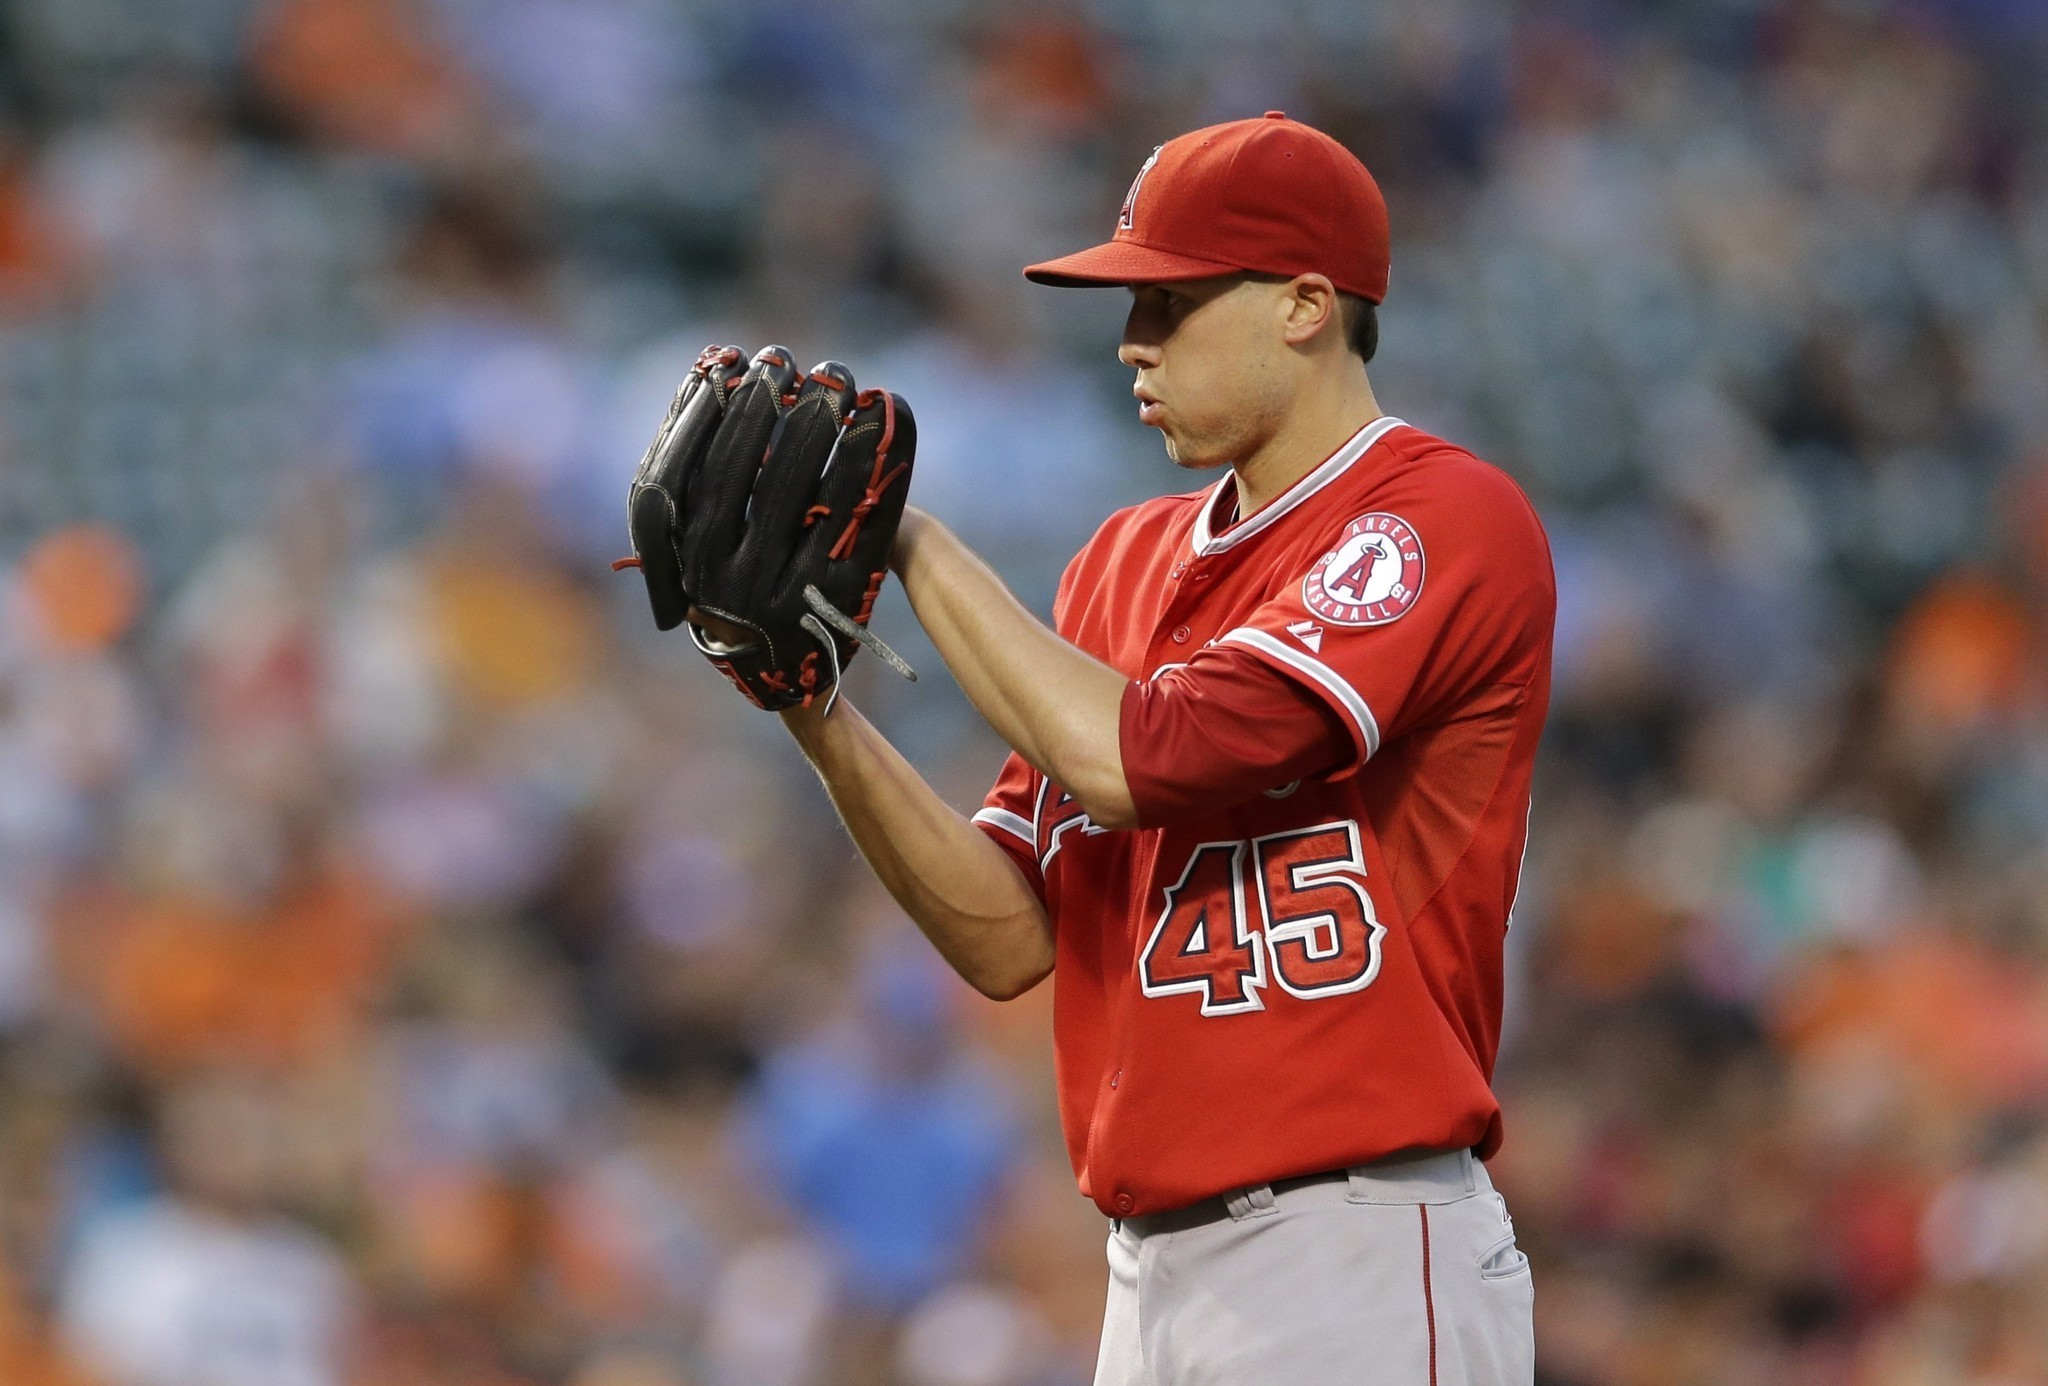 Angels' Tyler Skaggs likely headed to disabled list with forearm strain